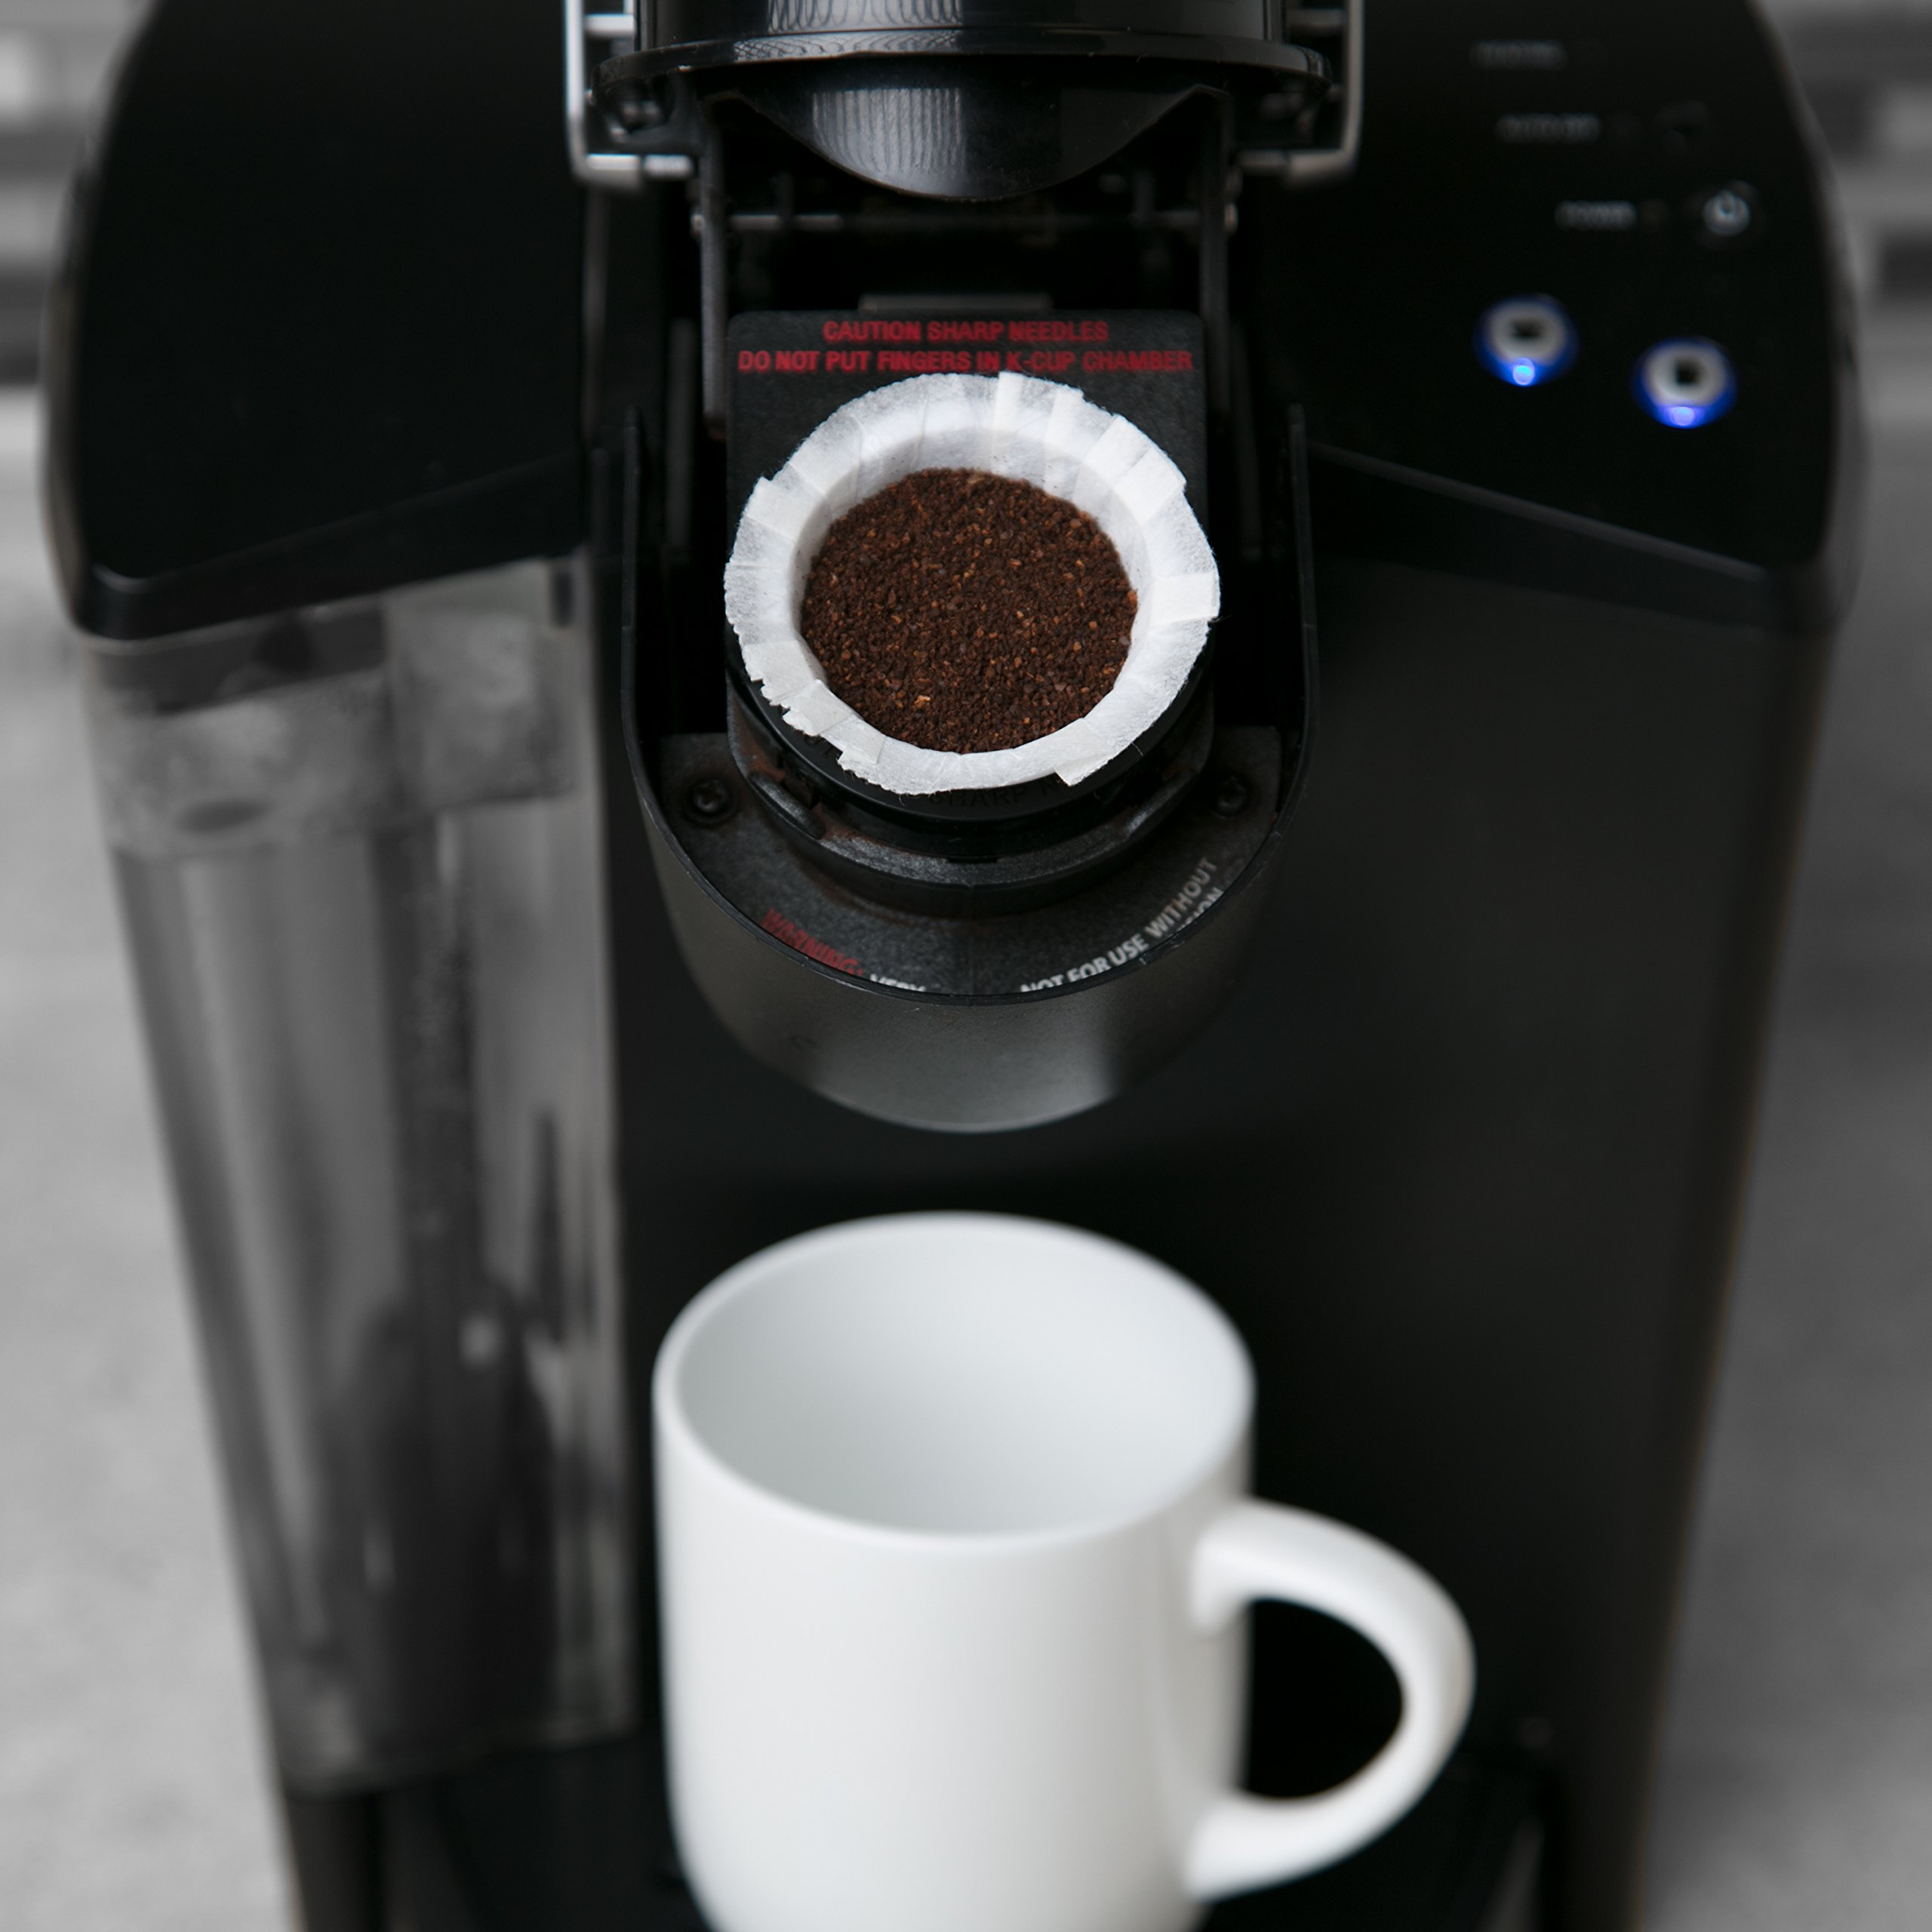 Disposable Cups for Use in Keurig Brewers - Simple Cups - 50 Cups, Lids, and Filters - Use Your Own Coffee in K-cups by Simple Cups (Image #6)